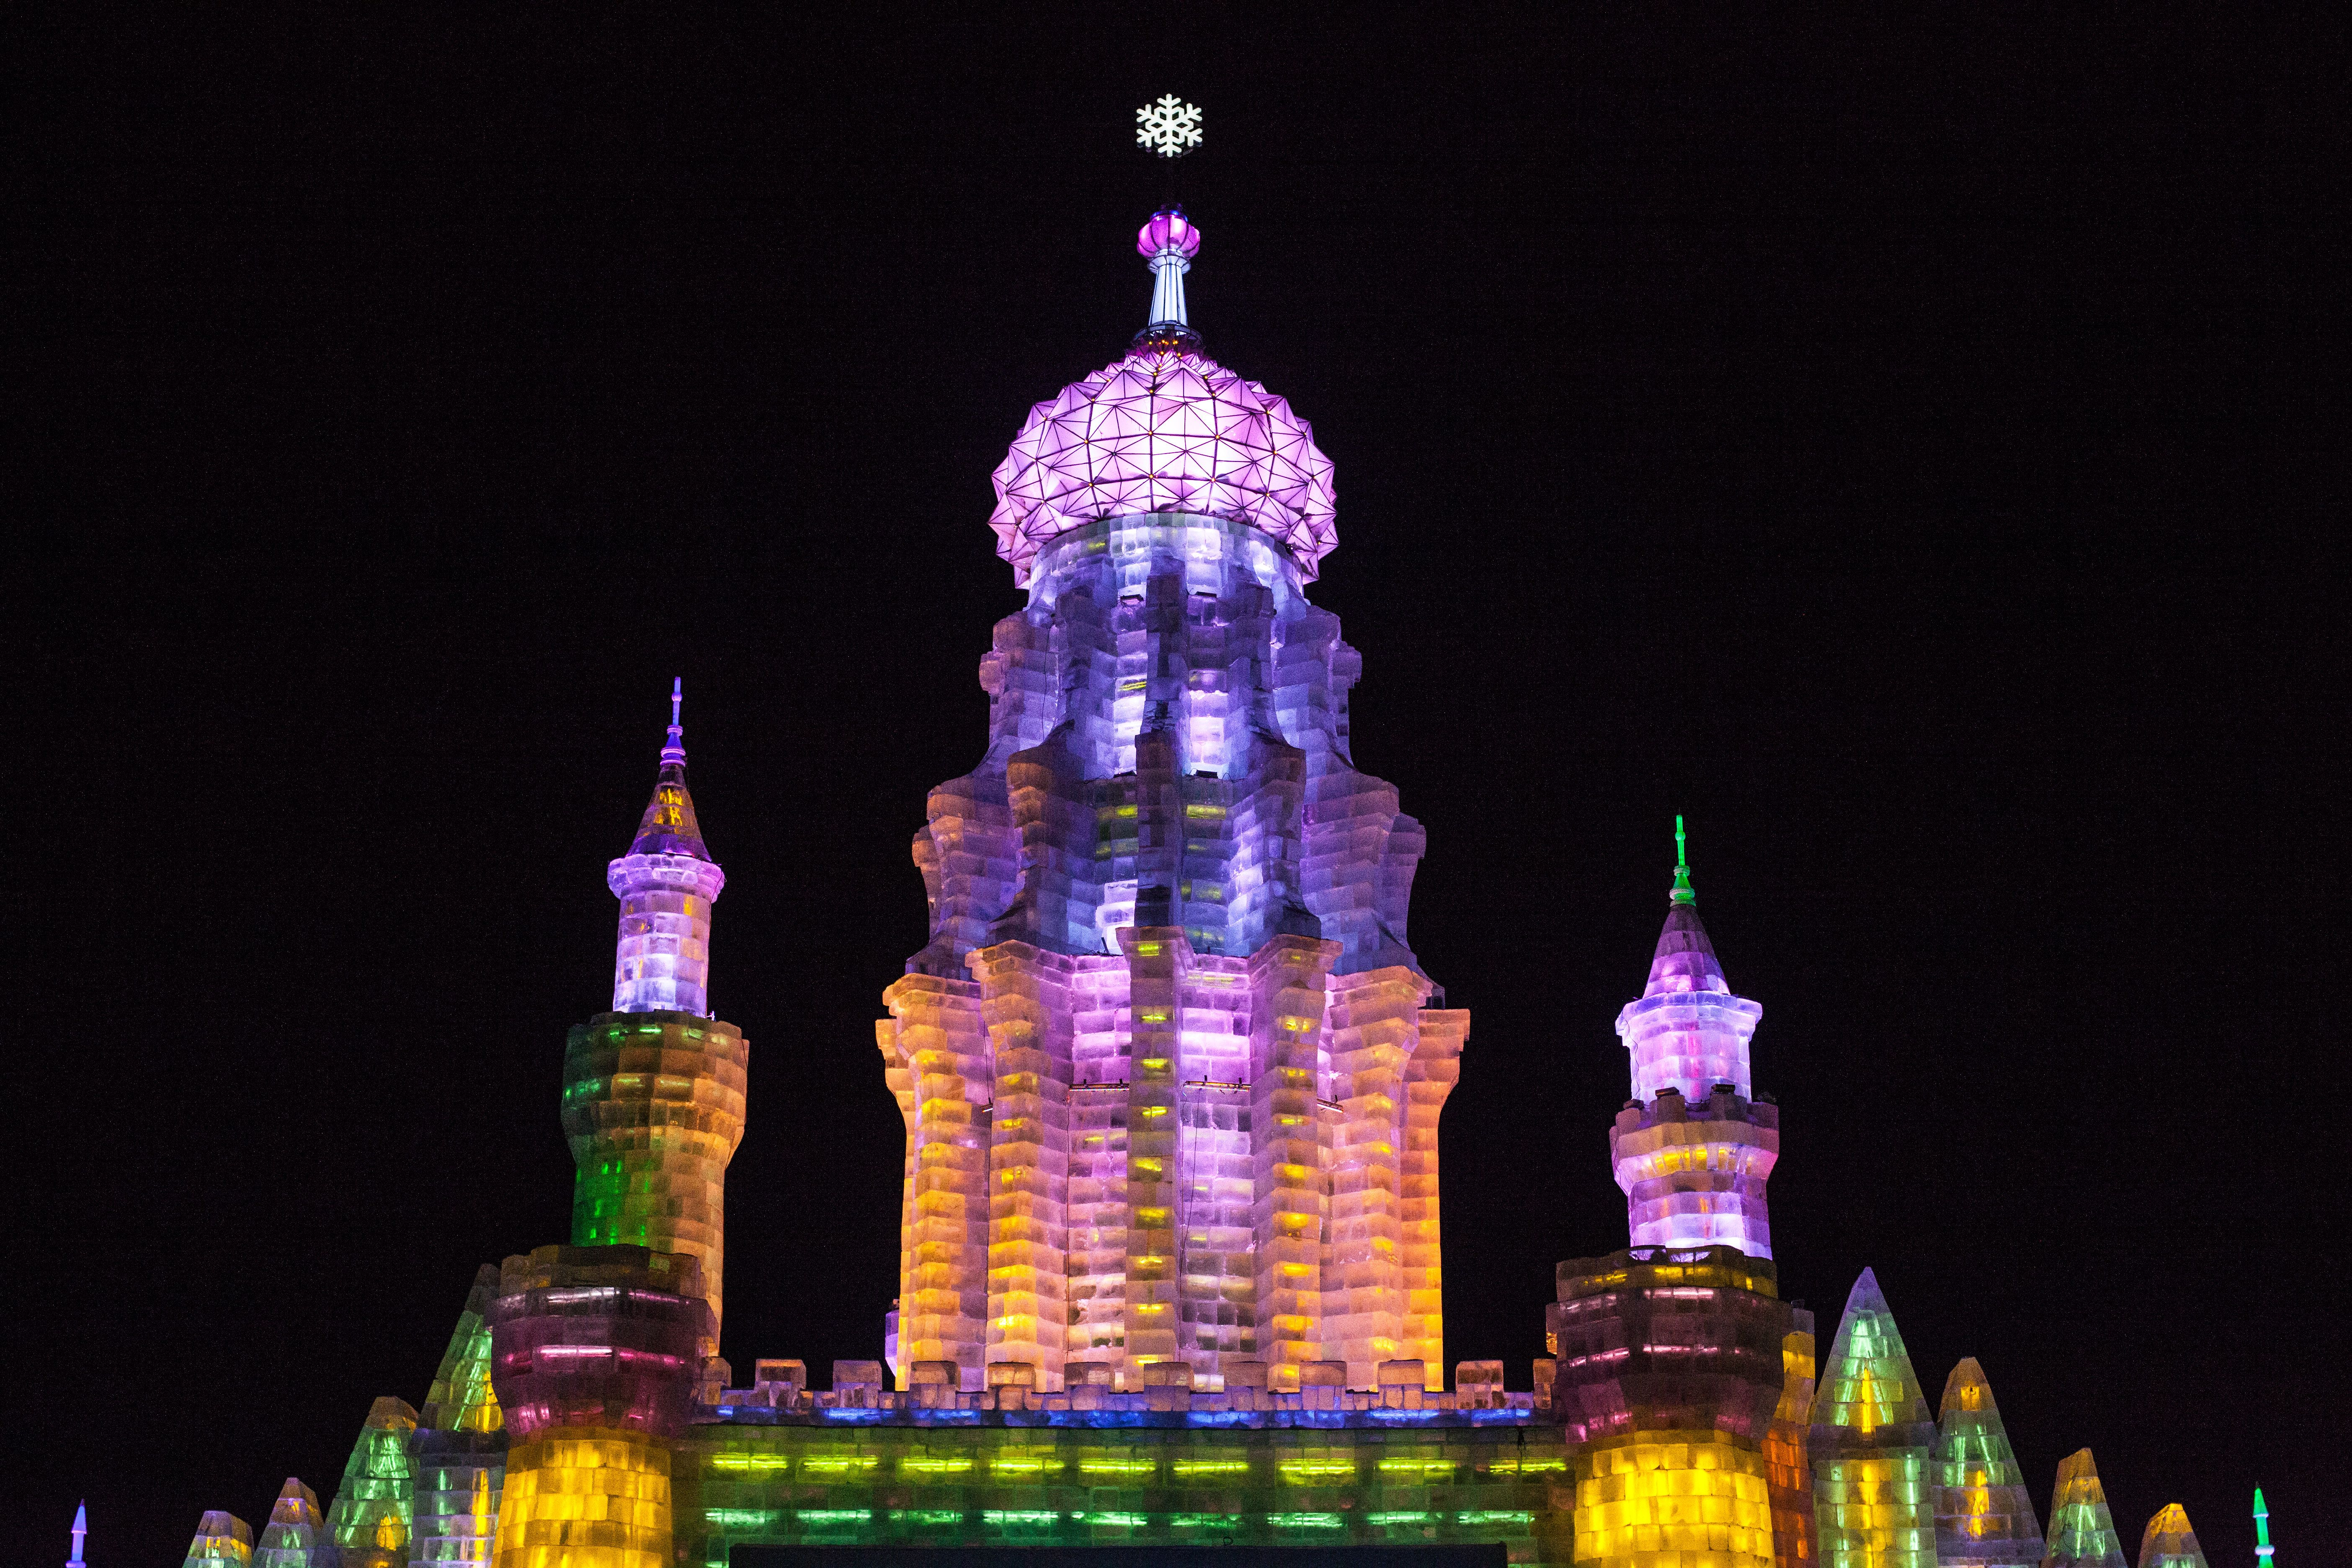 Tower At Harbin Ice And Snow Festival 2012   Harbin International Ice And  Snow Sculpture Festival   Wikipedia, The Free Encyclopedia